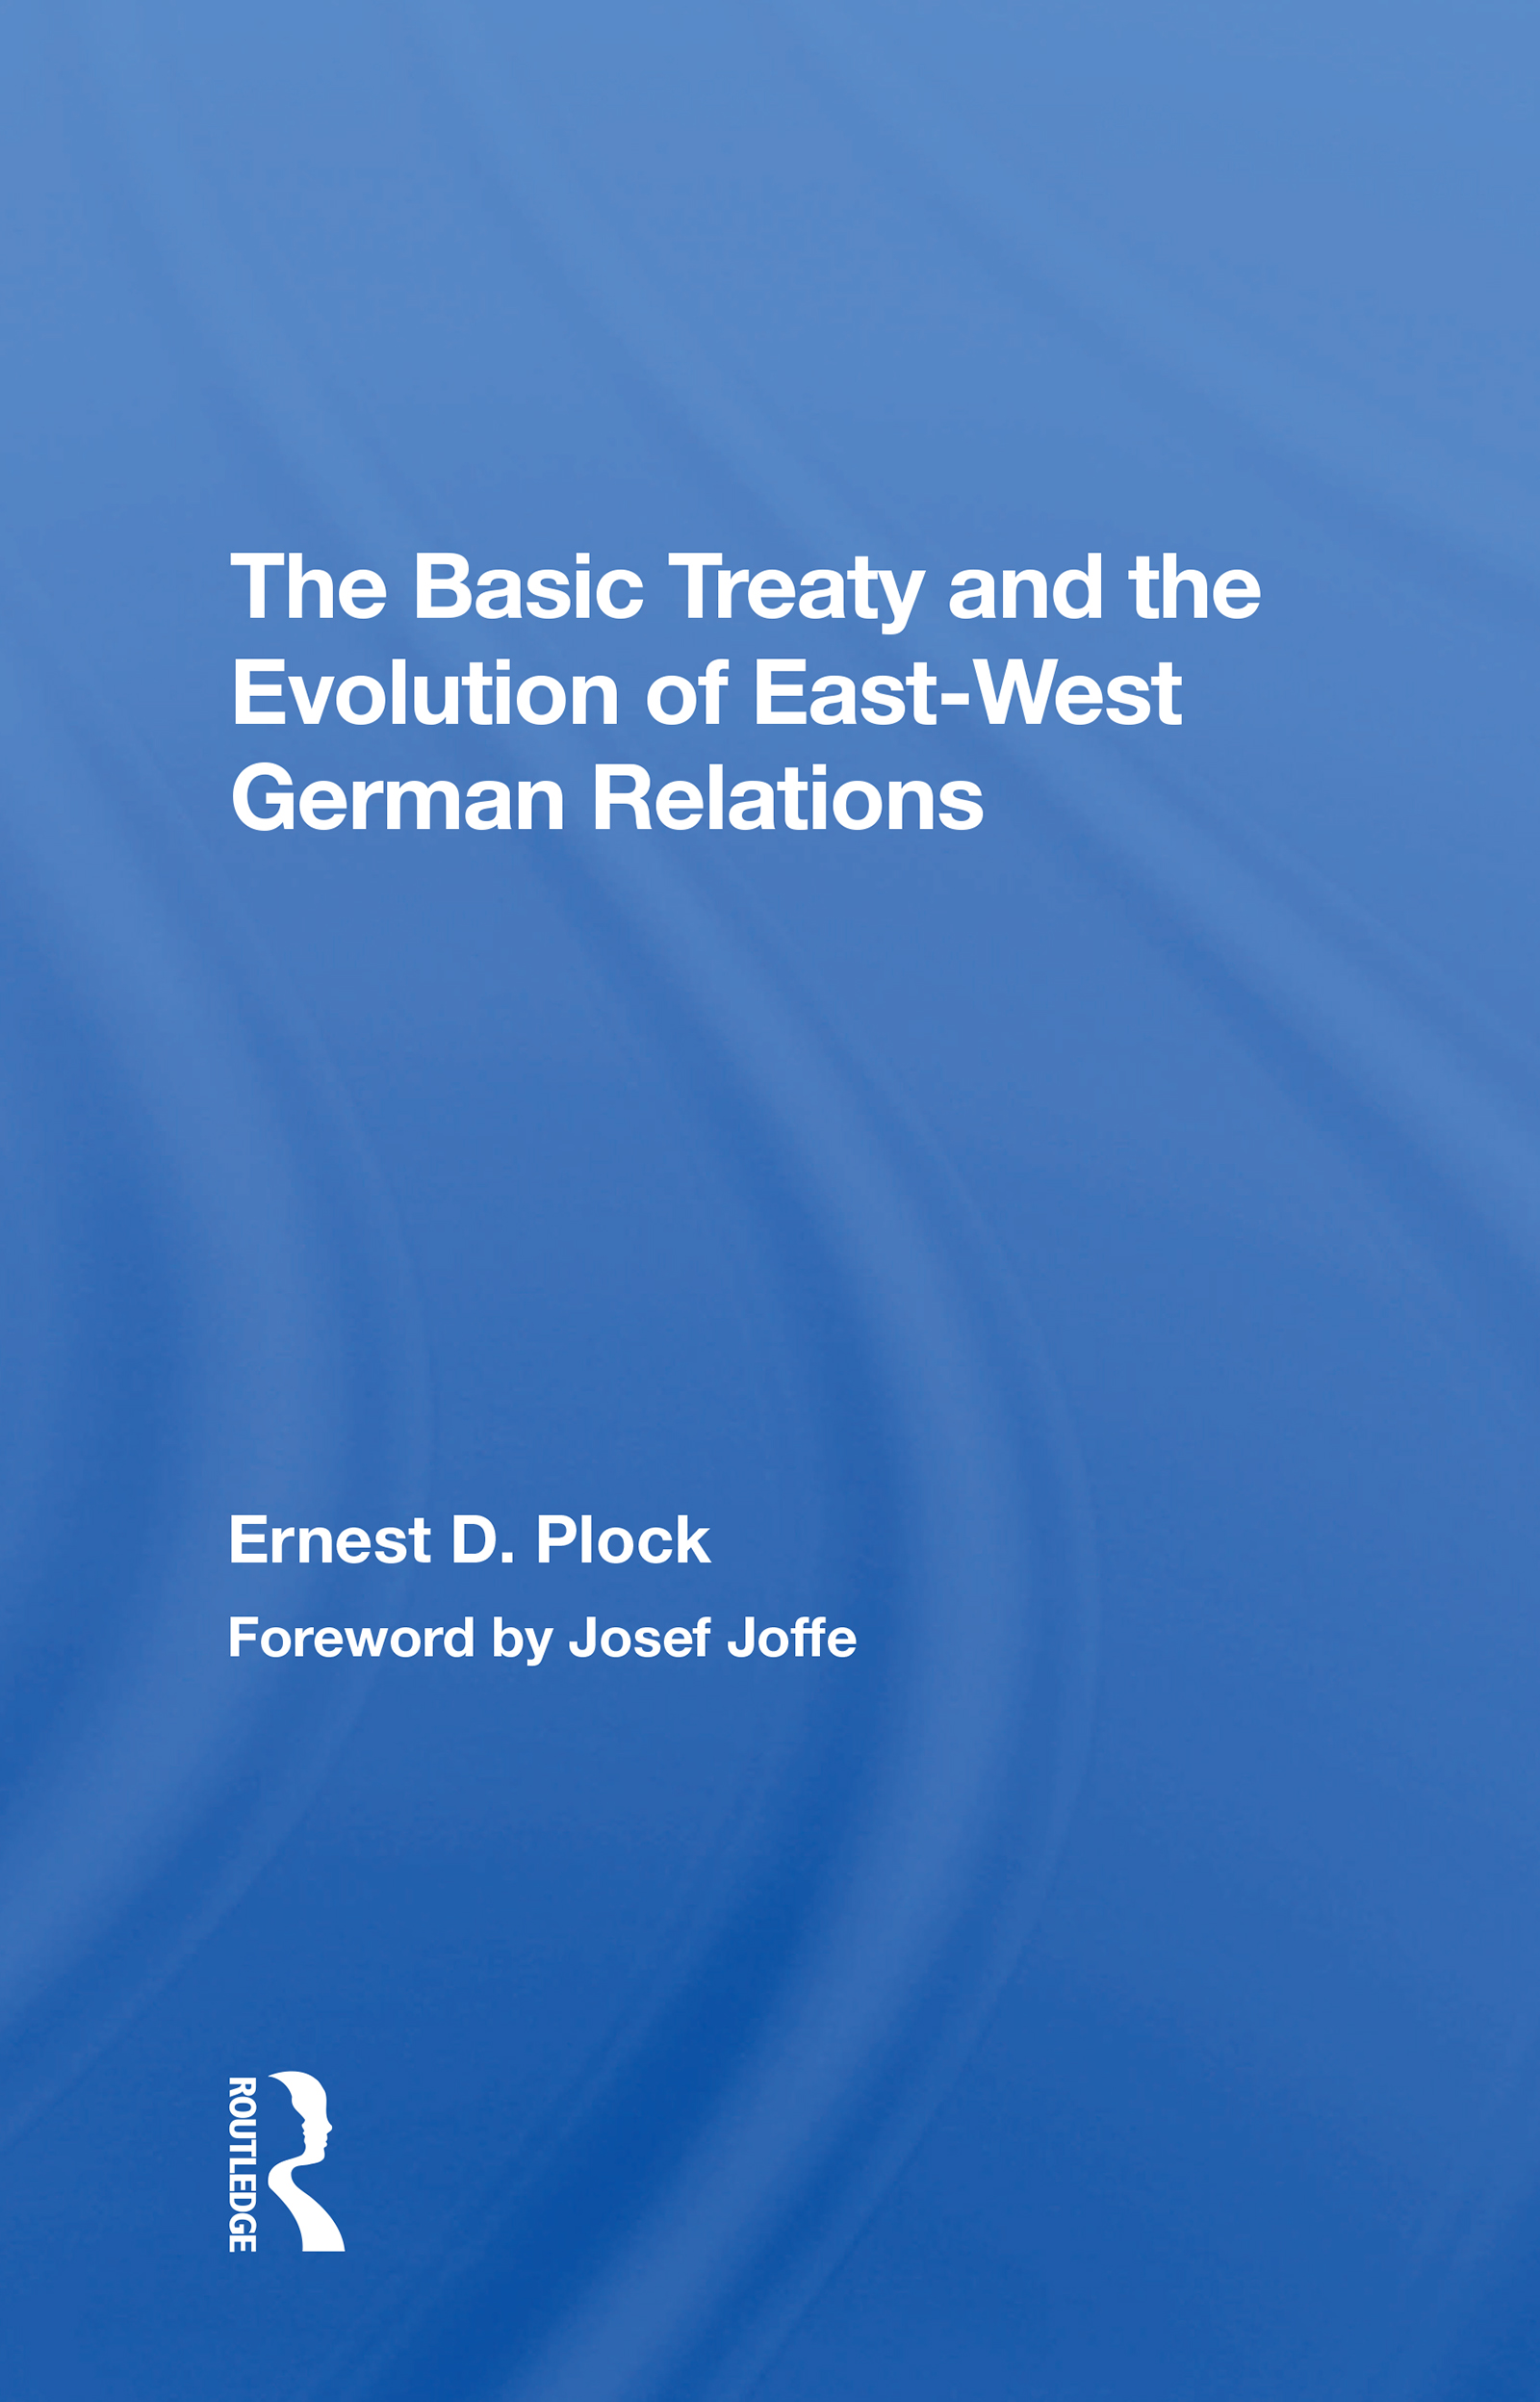 The Basic Treaty And The Evolution Of East-west German Relations